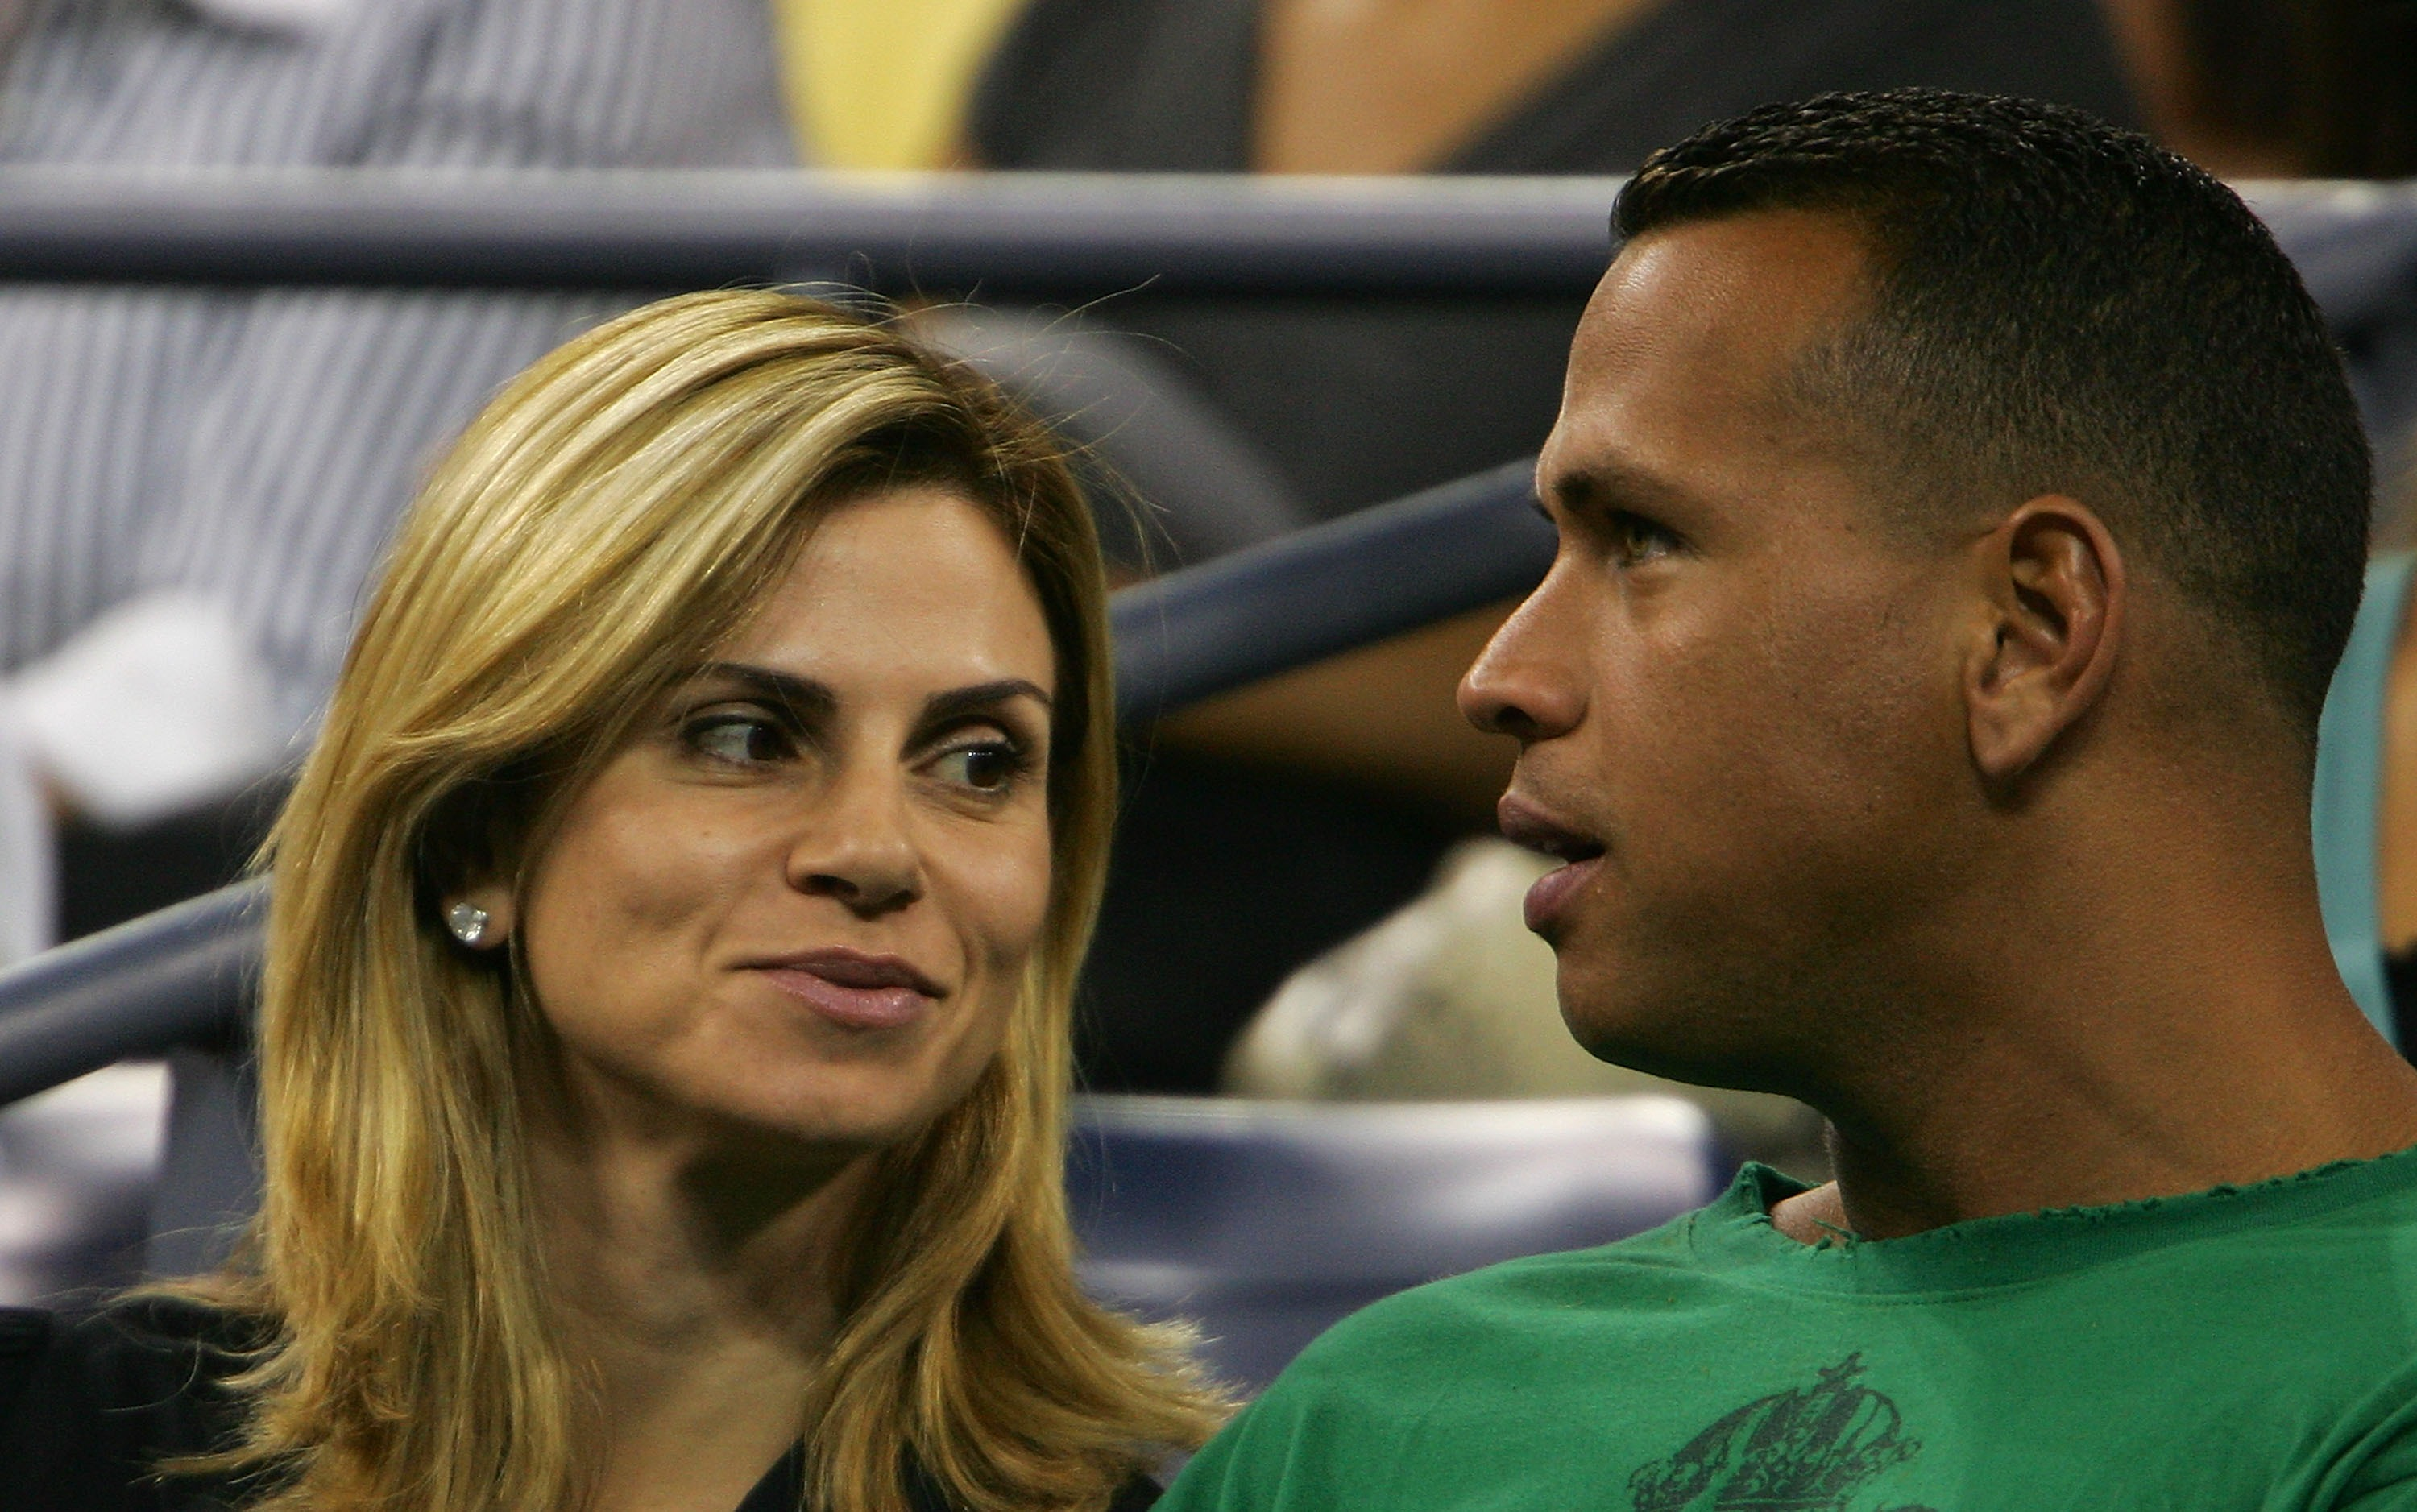 NEW YORK - SEPTEMBER 01:  Alex Rodriguez (R) of the New York Yankees and his wife Cynthia attend the match between Nicole Valdisova and Sharar Peer during day six of the 2007 U.S. Open at the Billie Jean King National Tennis Center on September 1, 2007 in